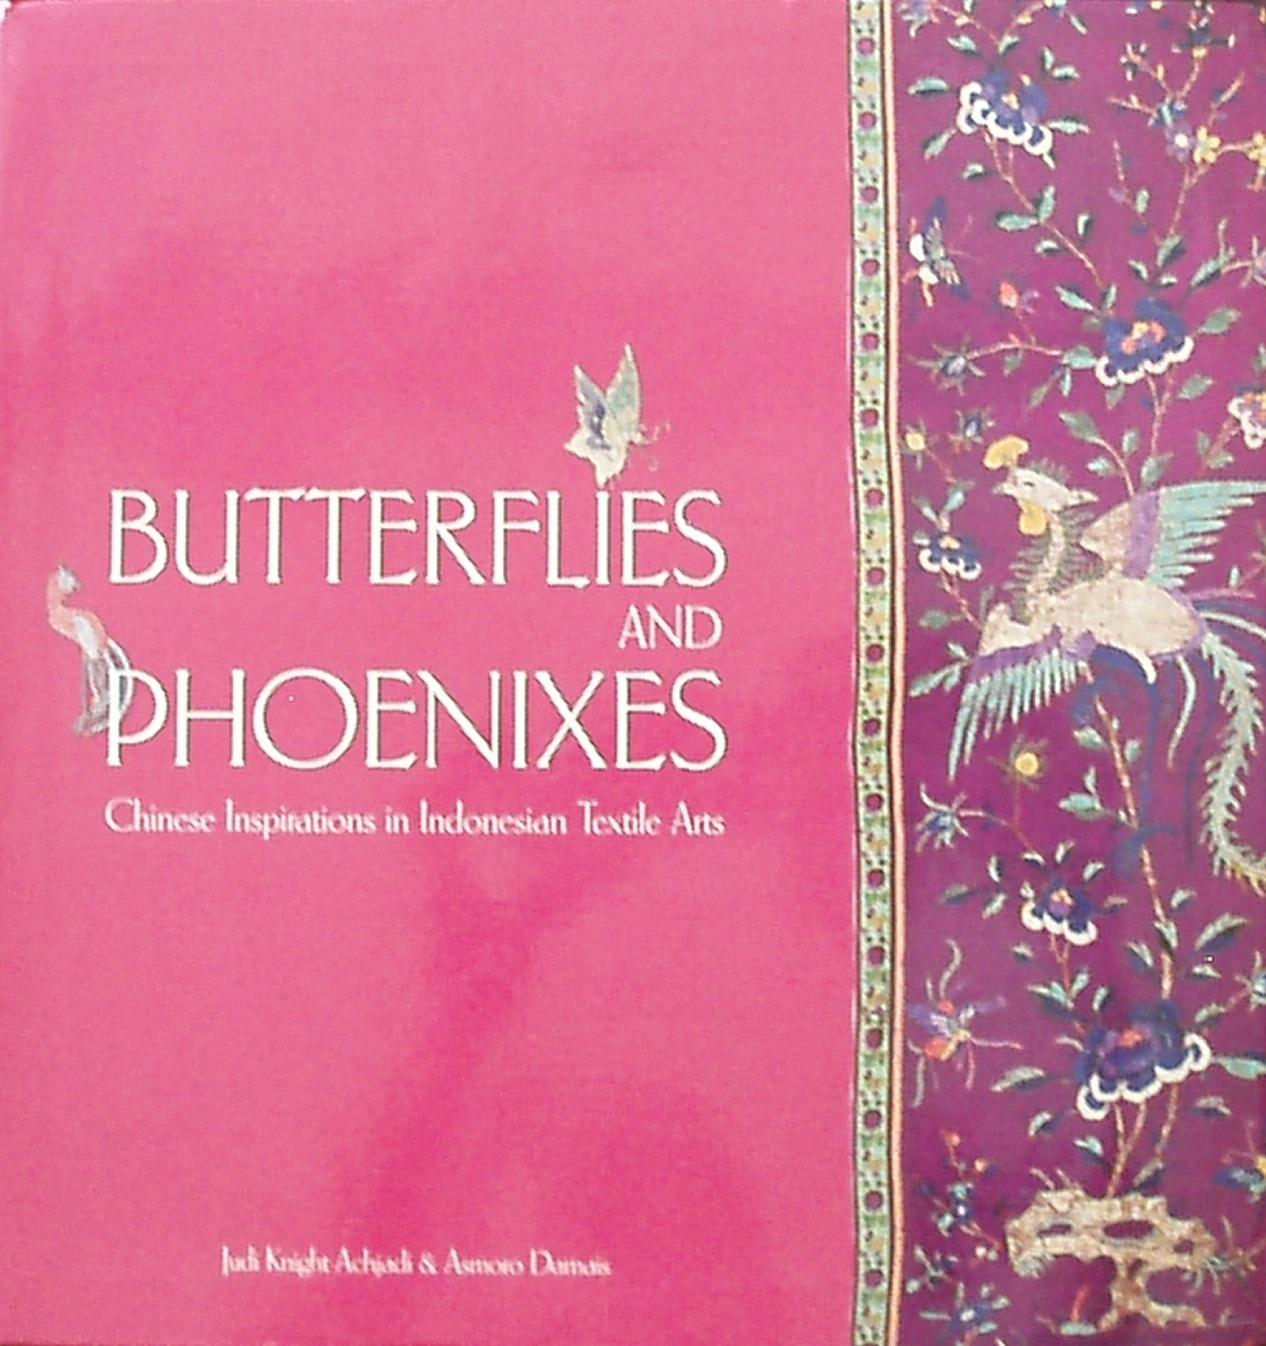 Butterflies and Phoenixes